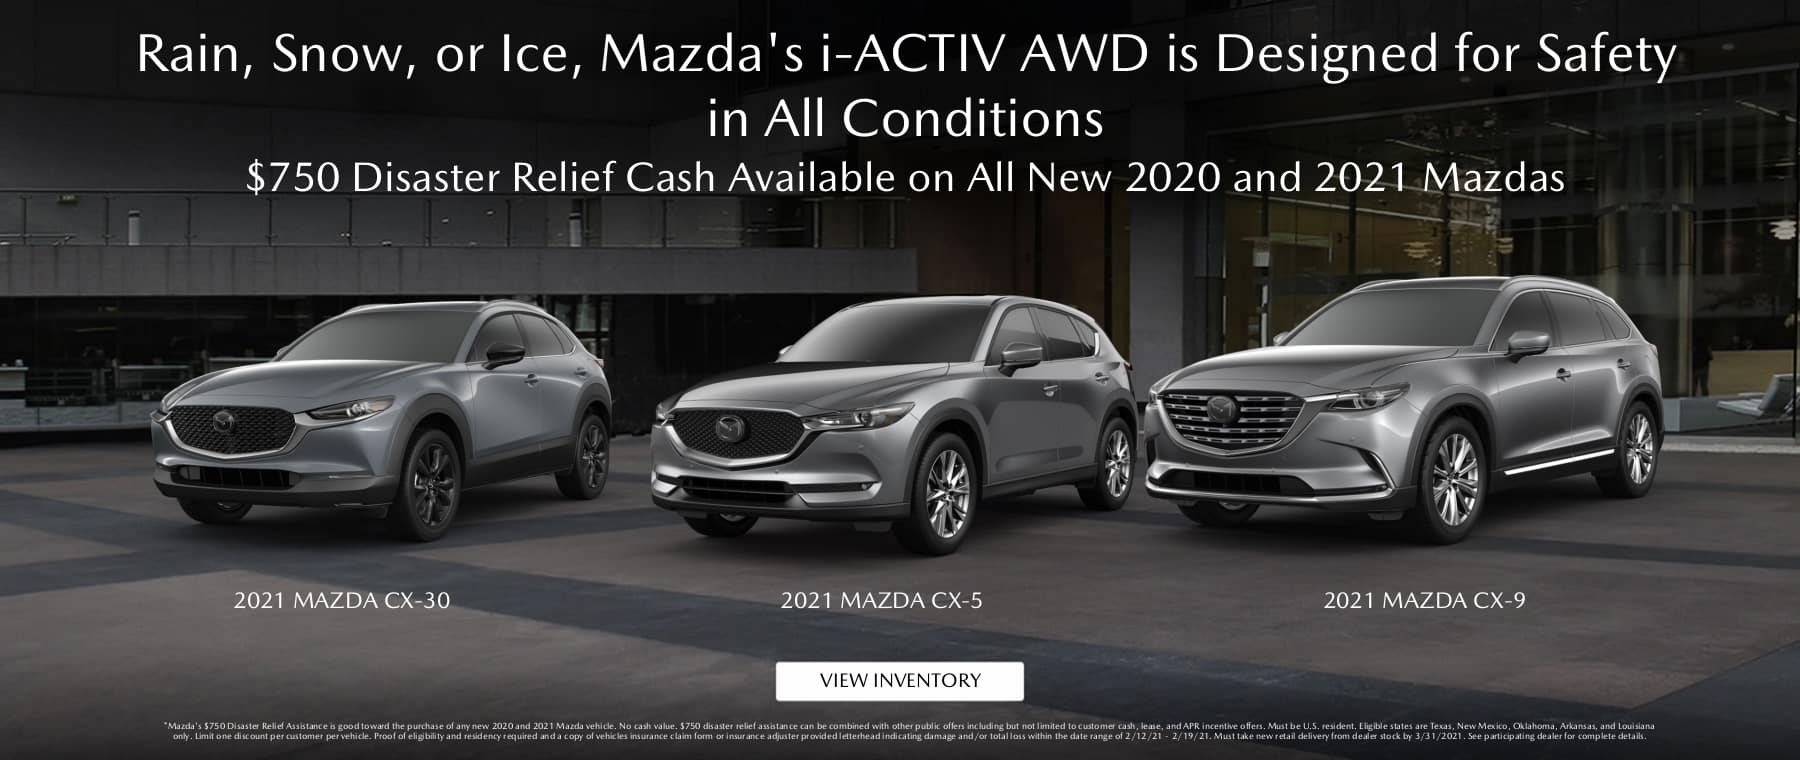 Mazda Disaster Relief